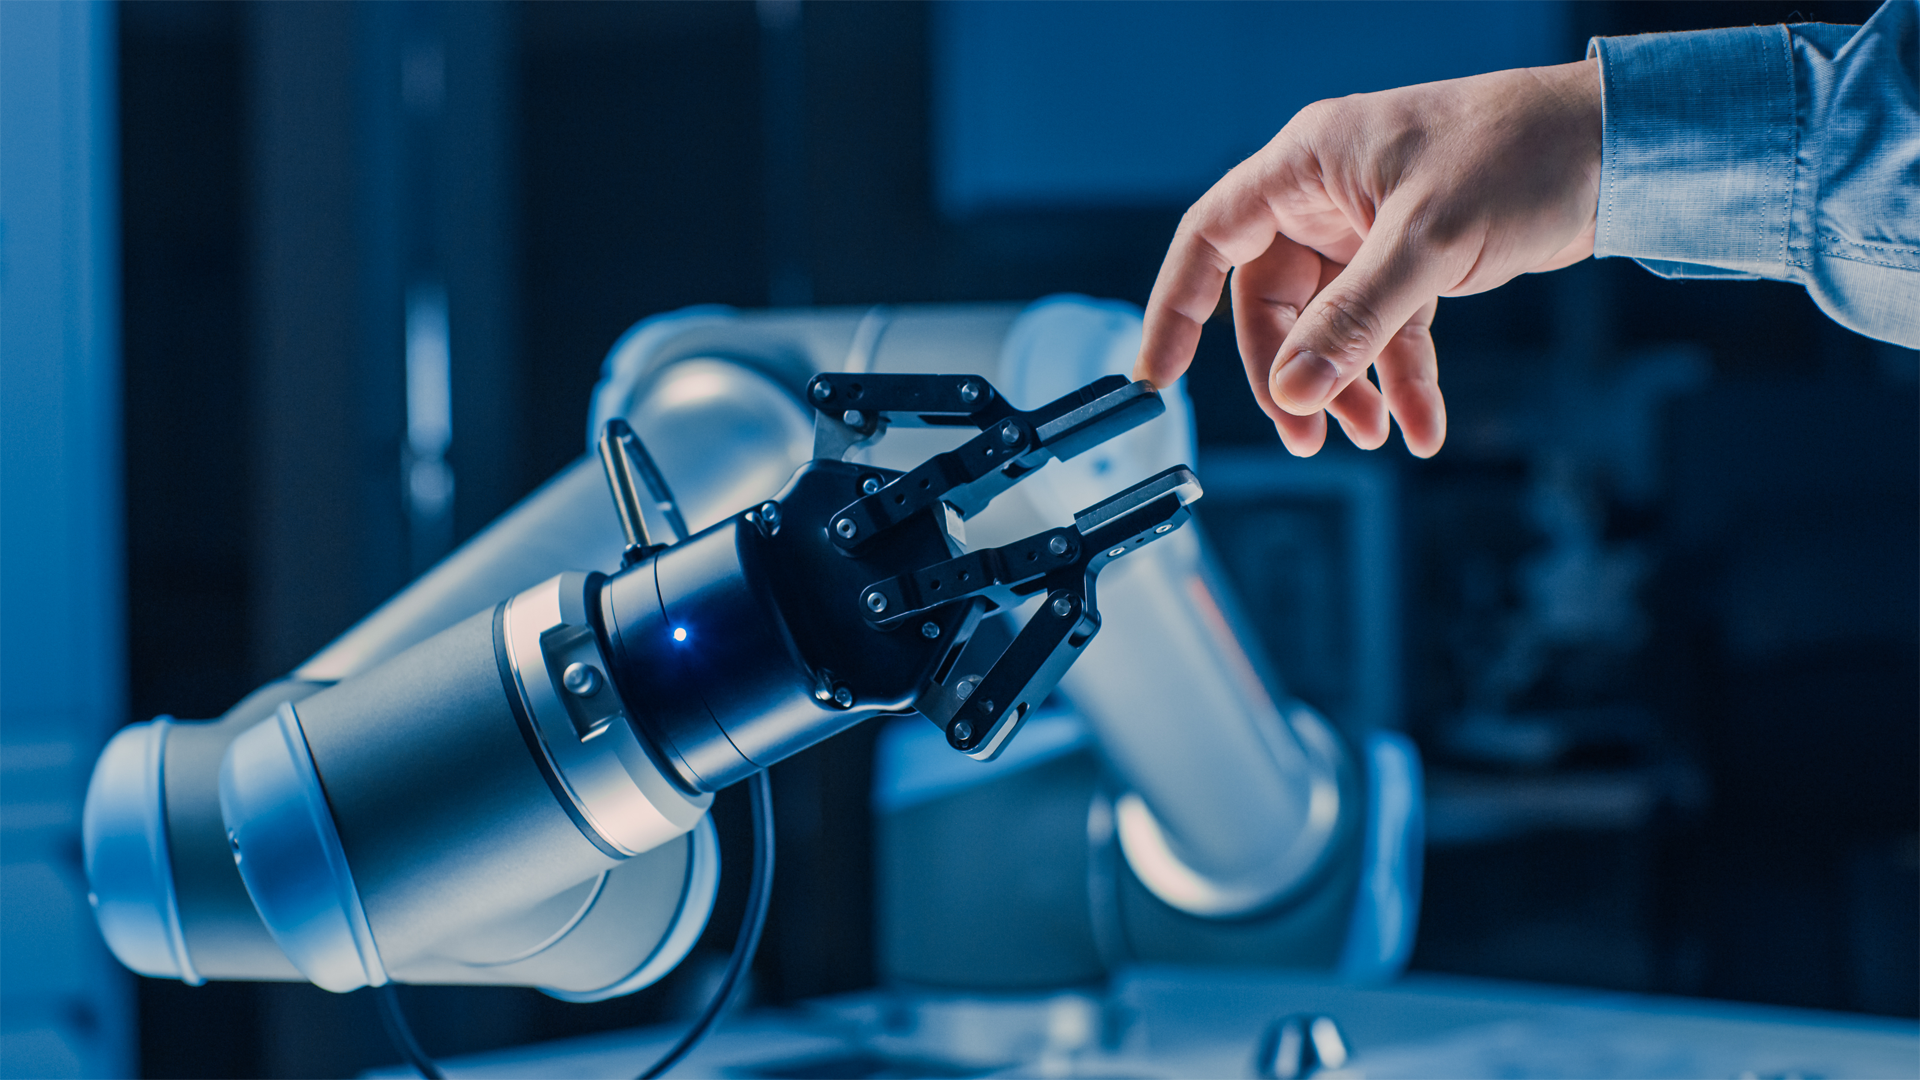 Here's How Robotic Assistants are Helping Humans